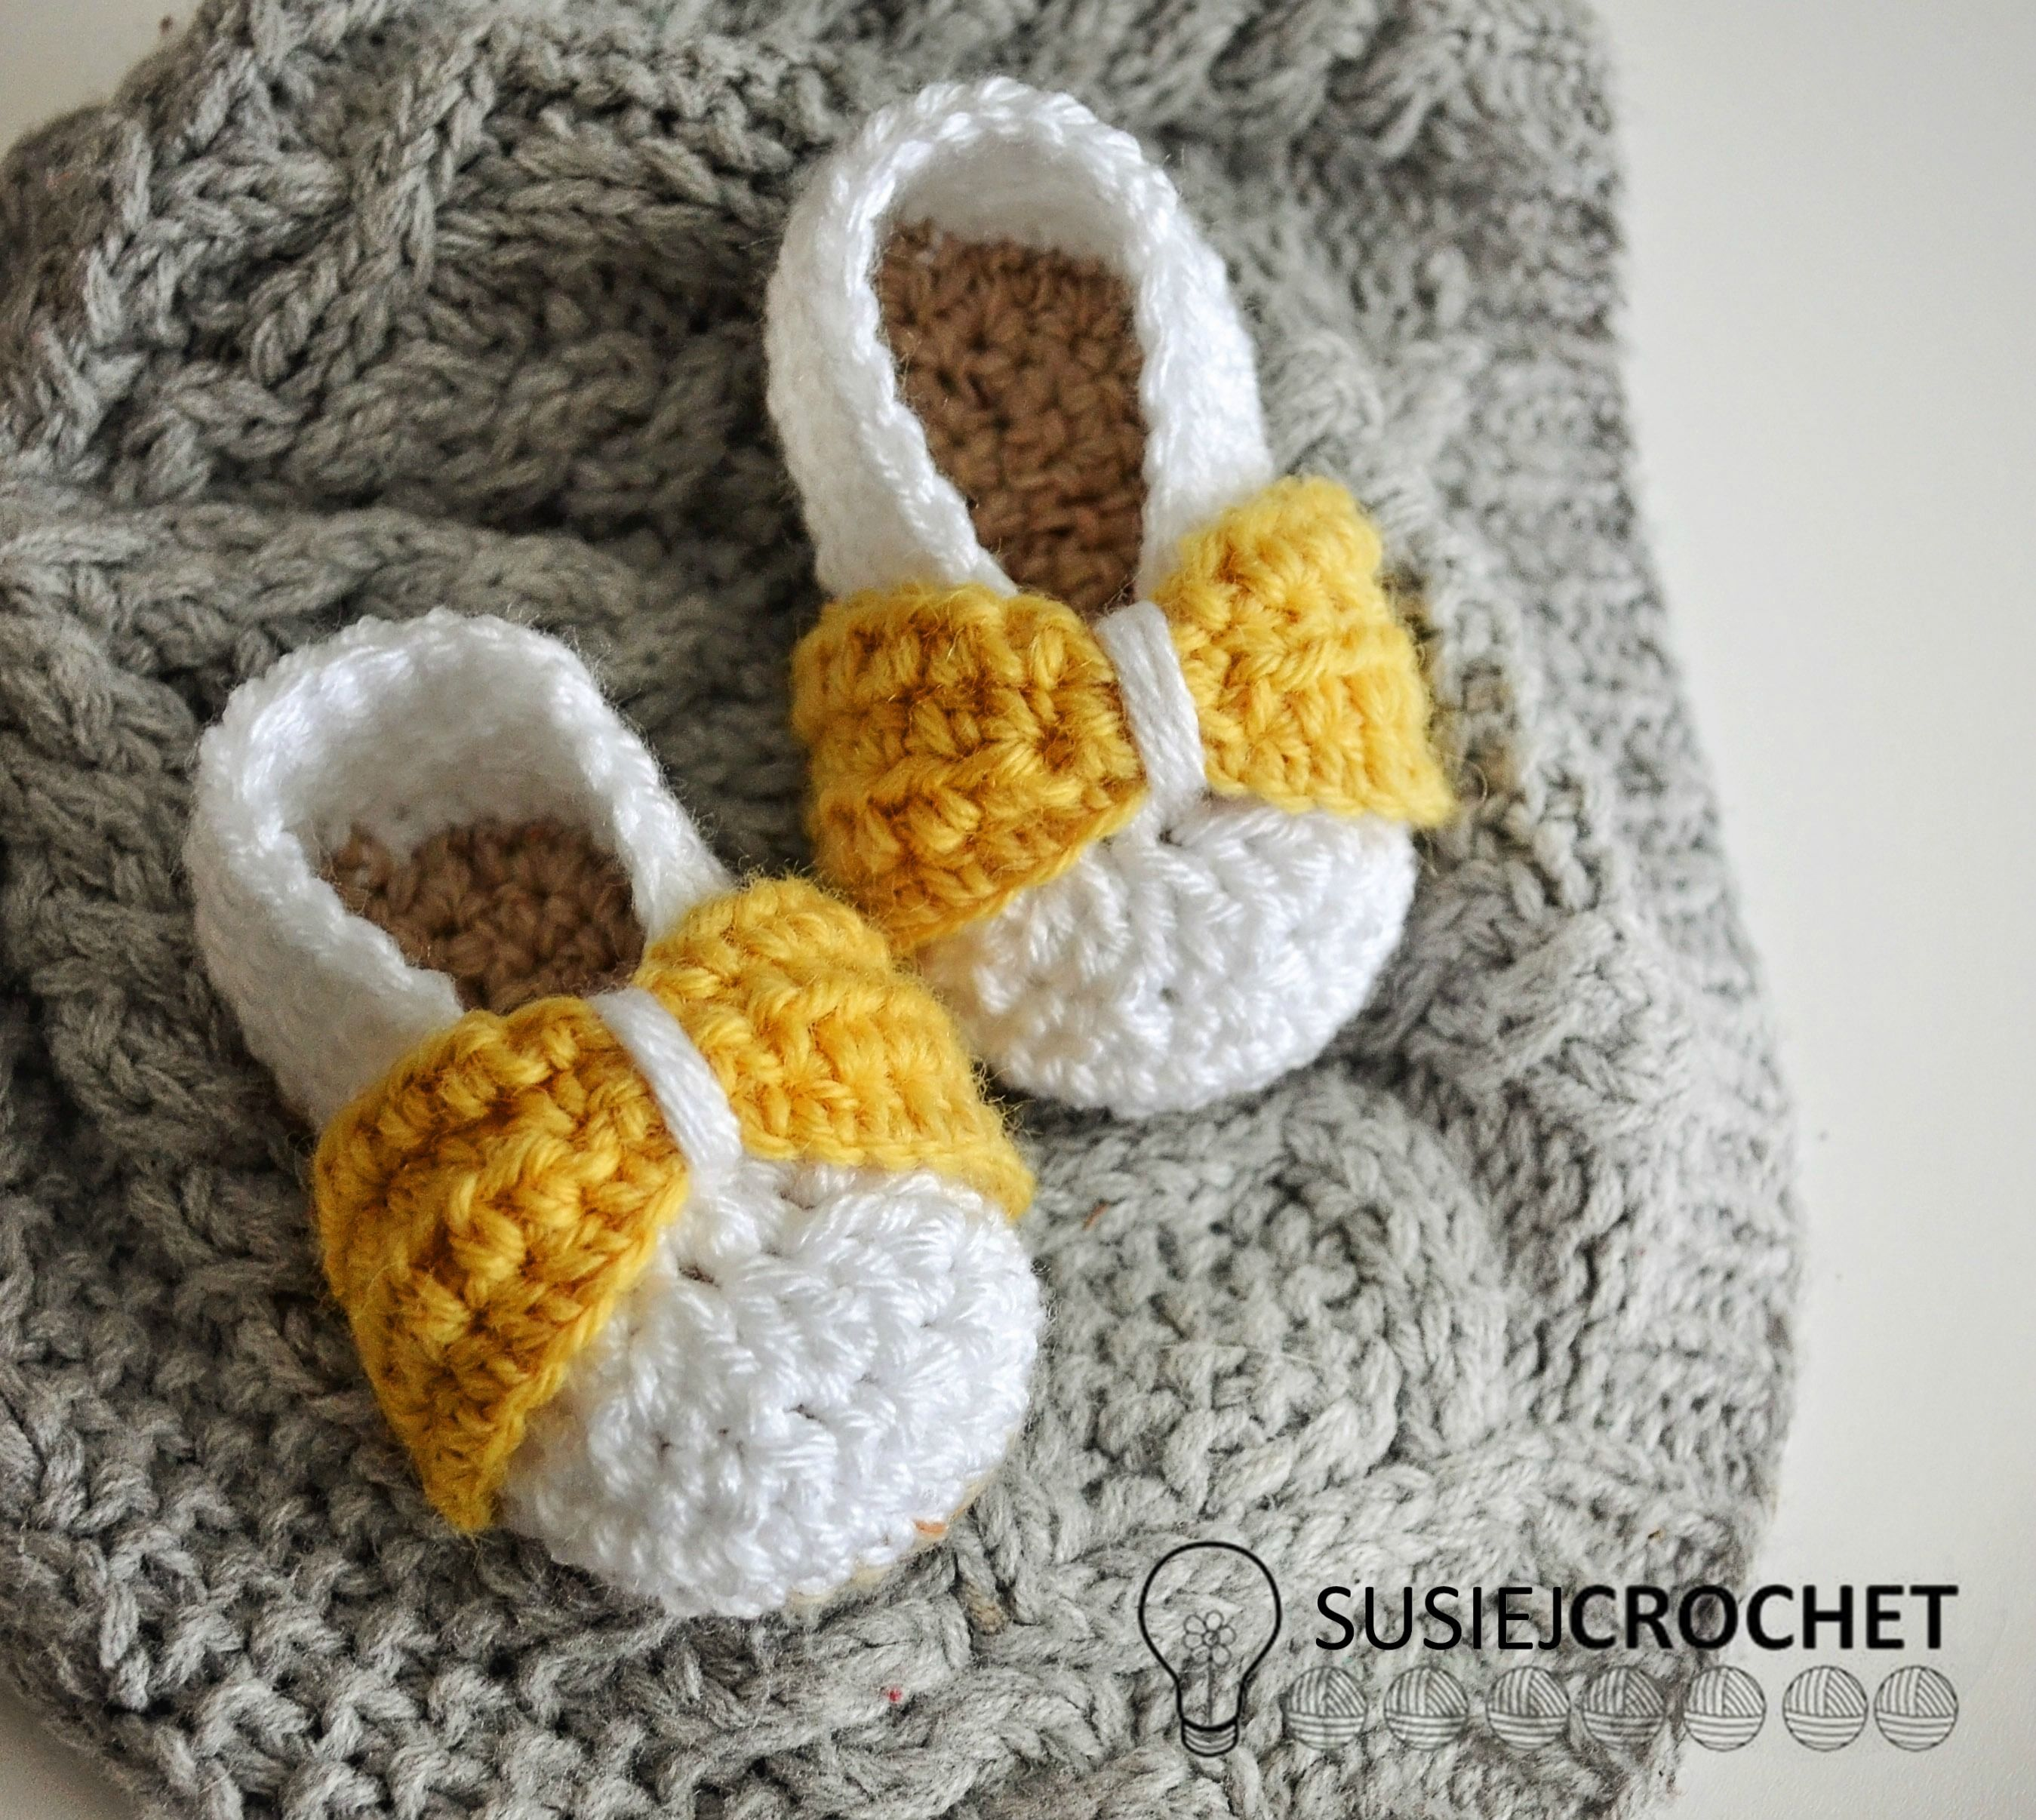 Crochet Pattern for Baby Bow Shoes! #susiejcrochet | Susie J Crochet ...